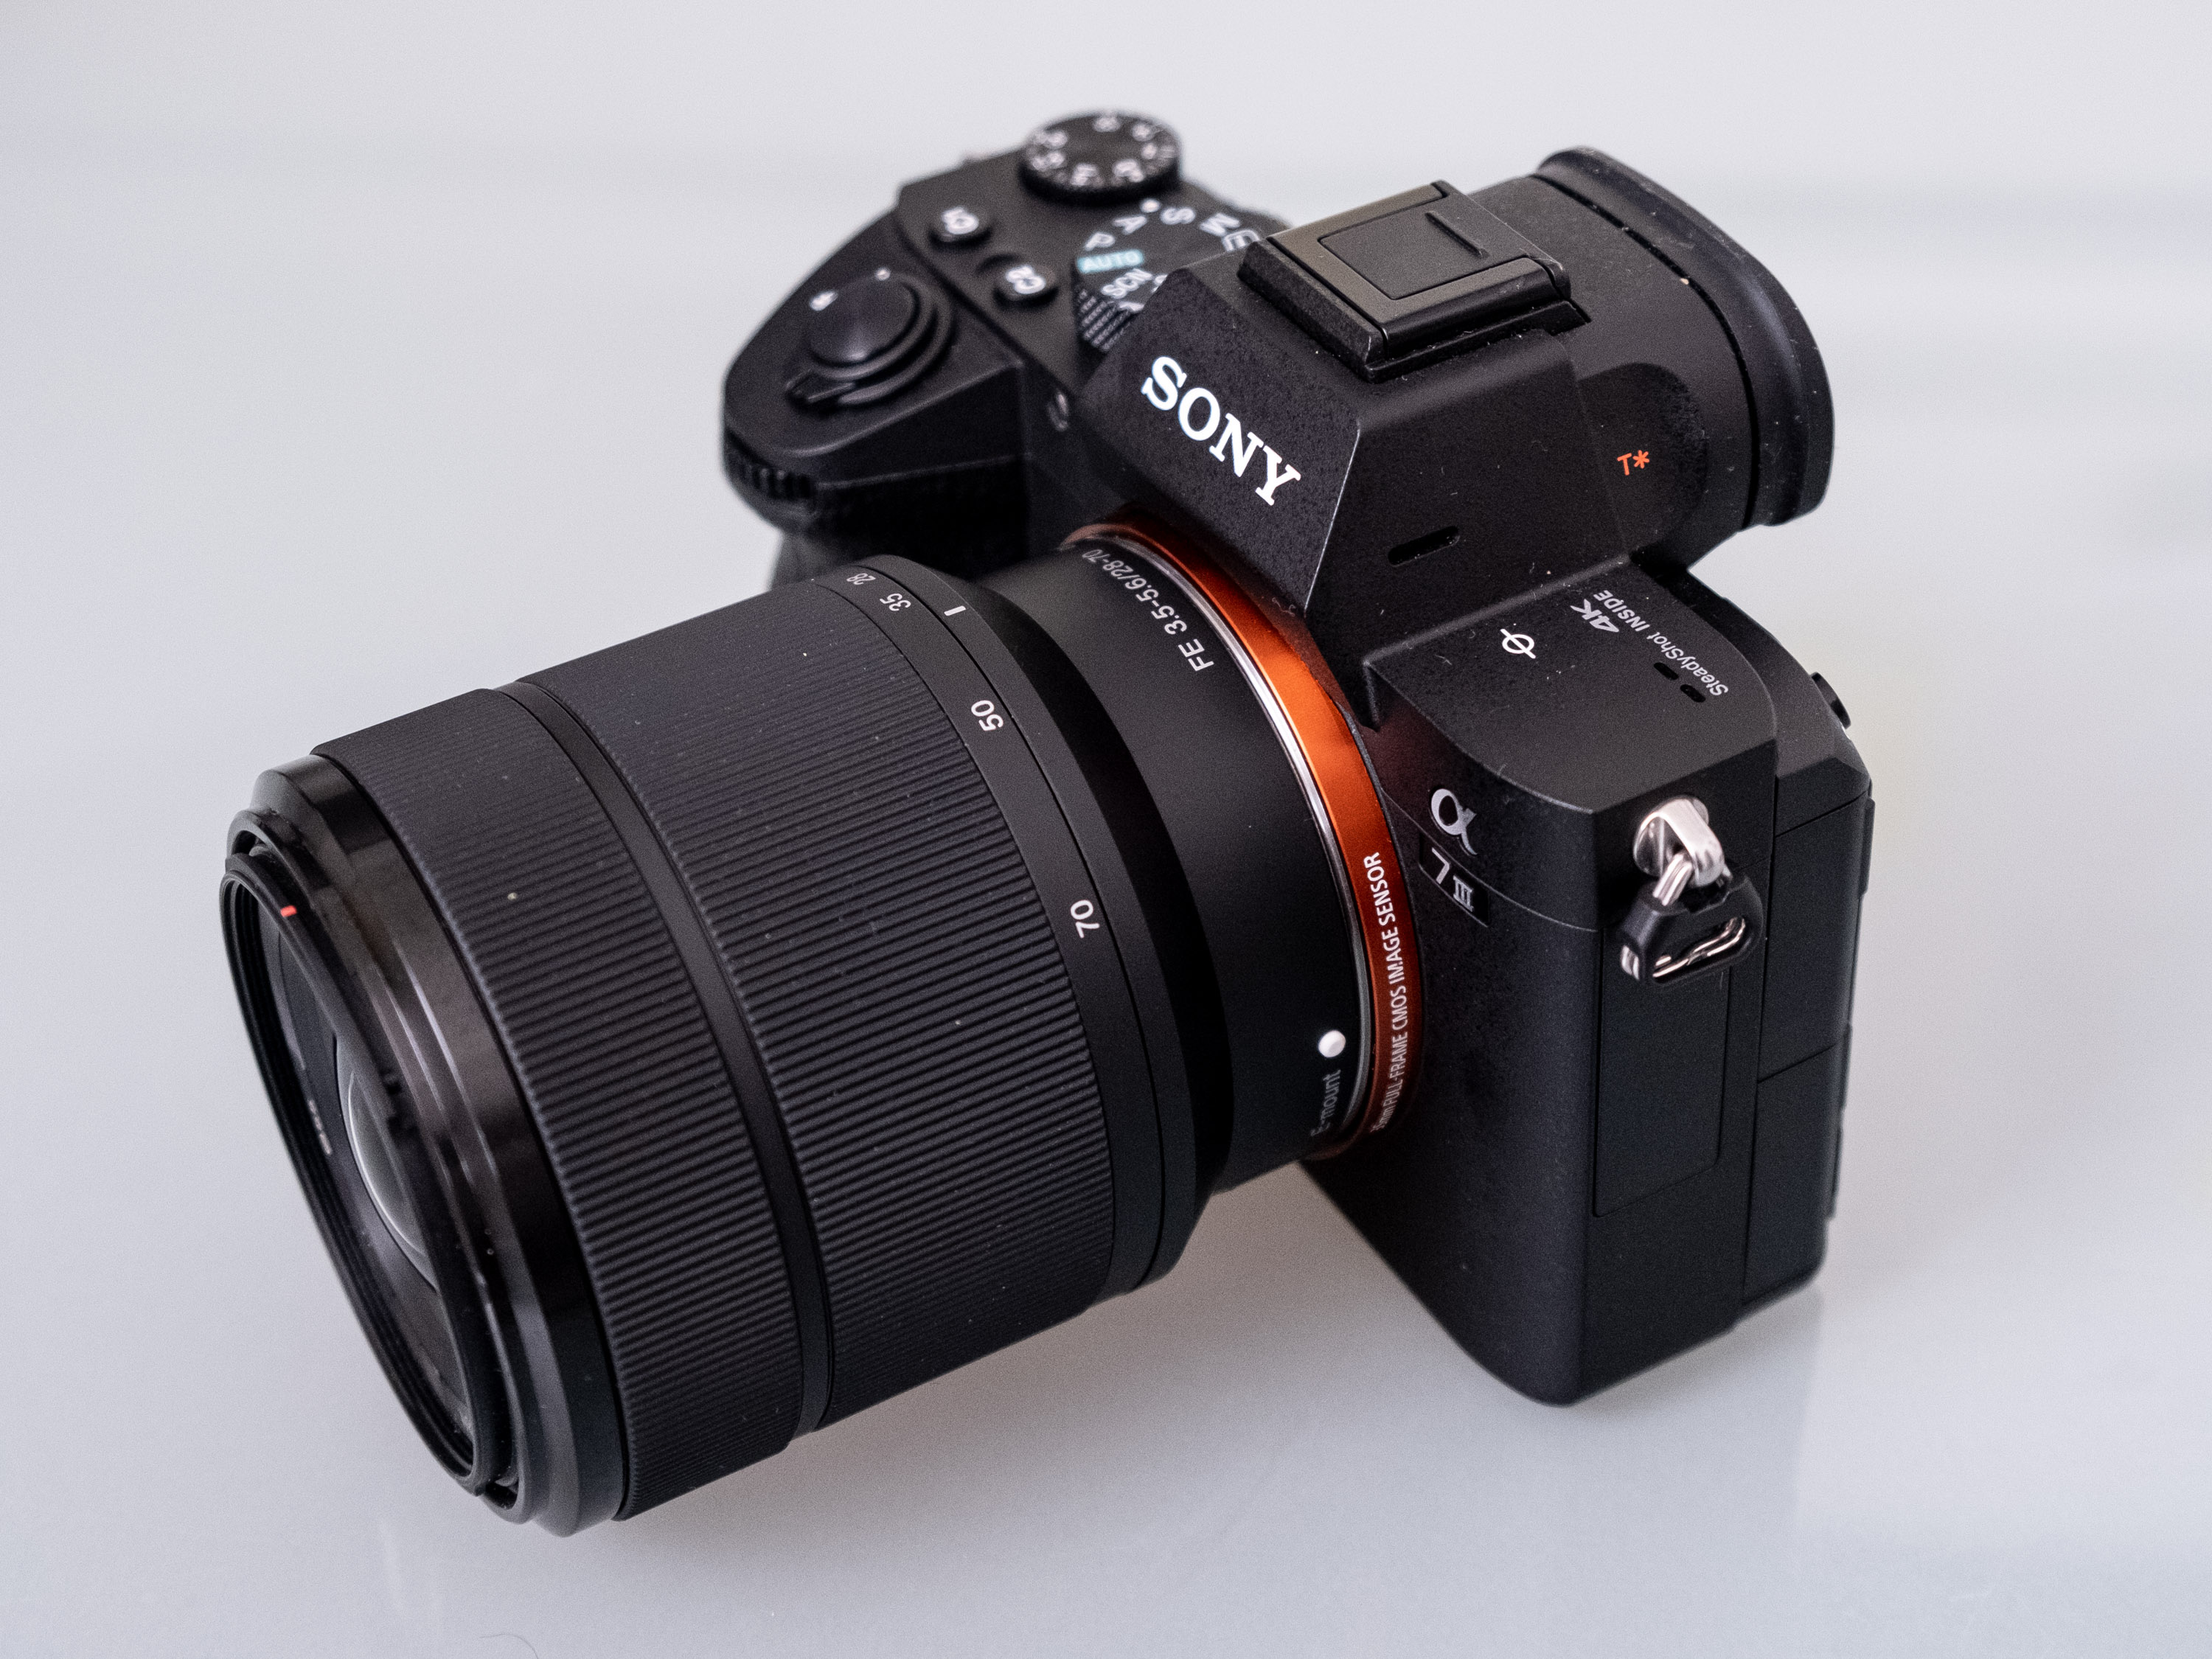 A photo of the Sony a7 III